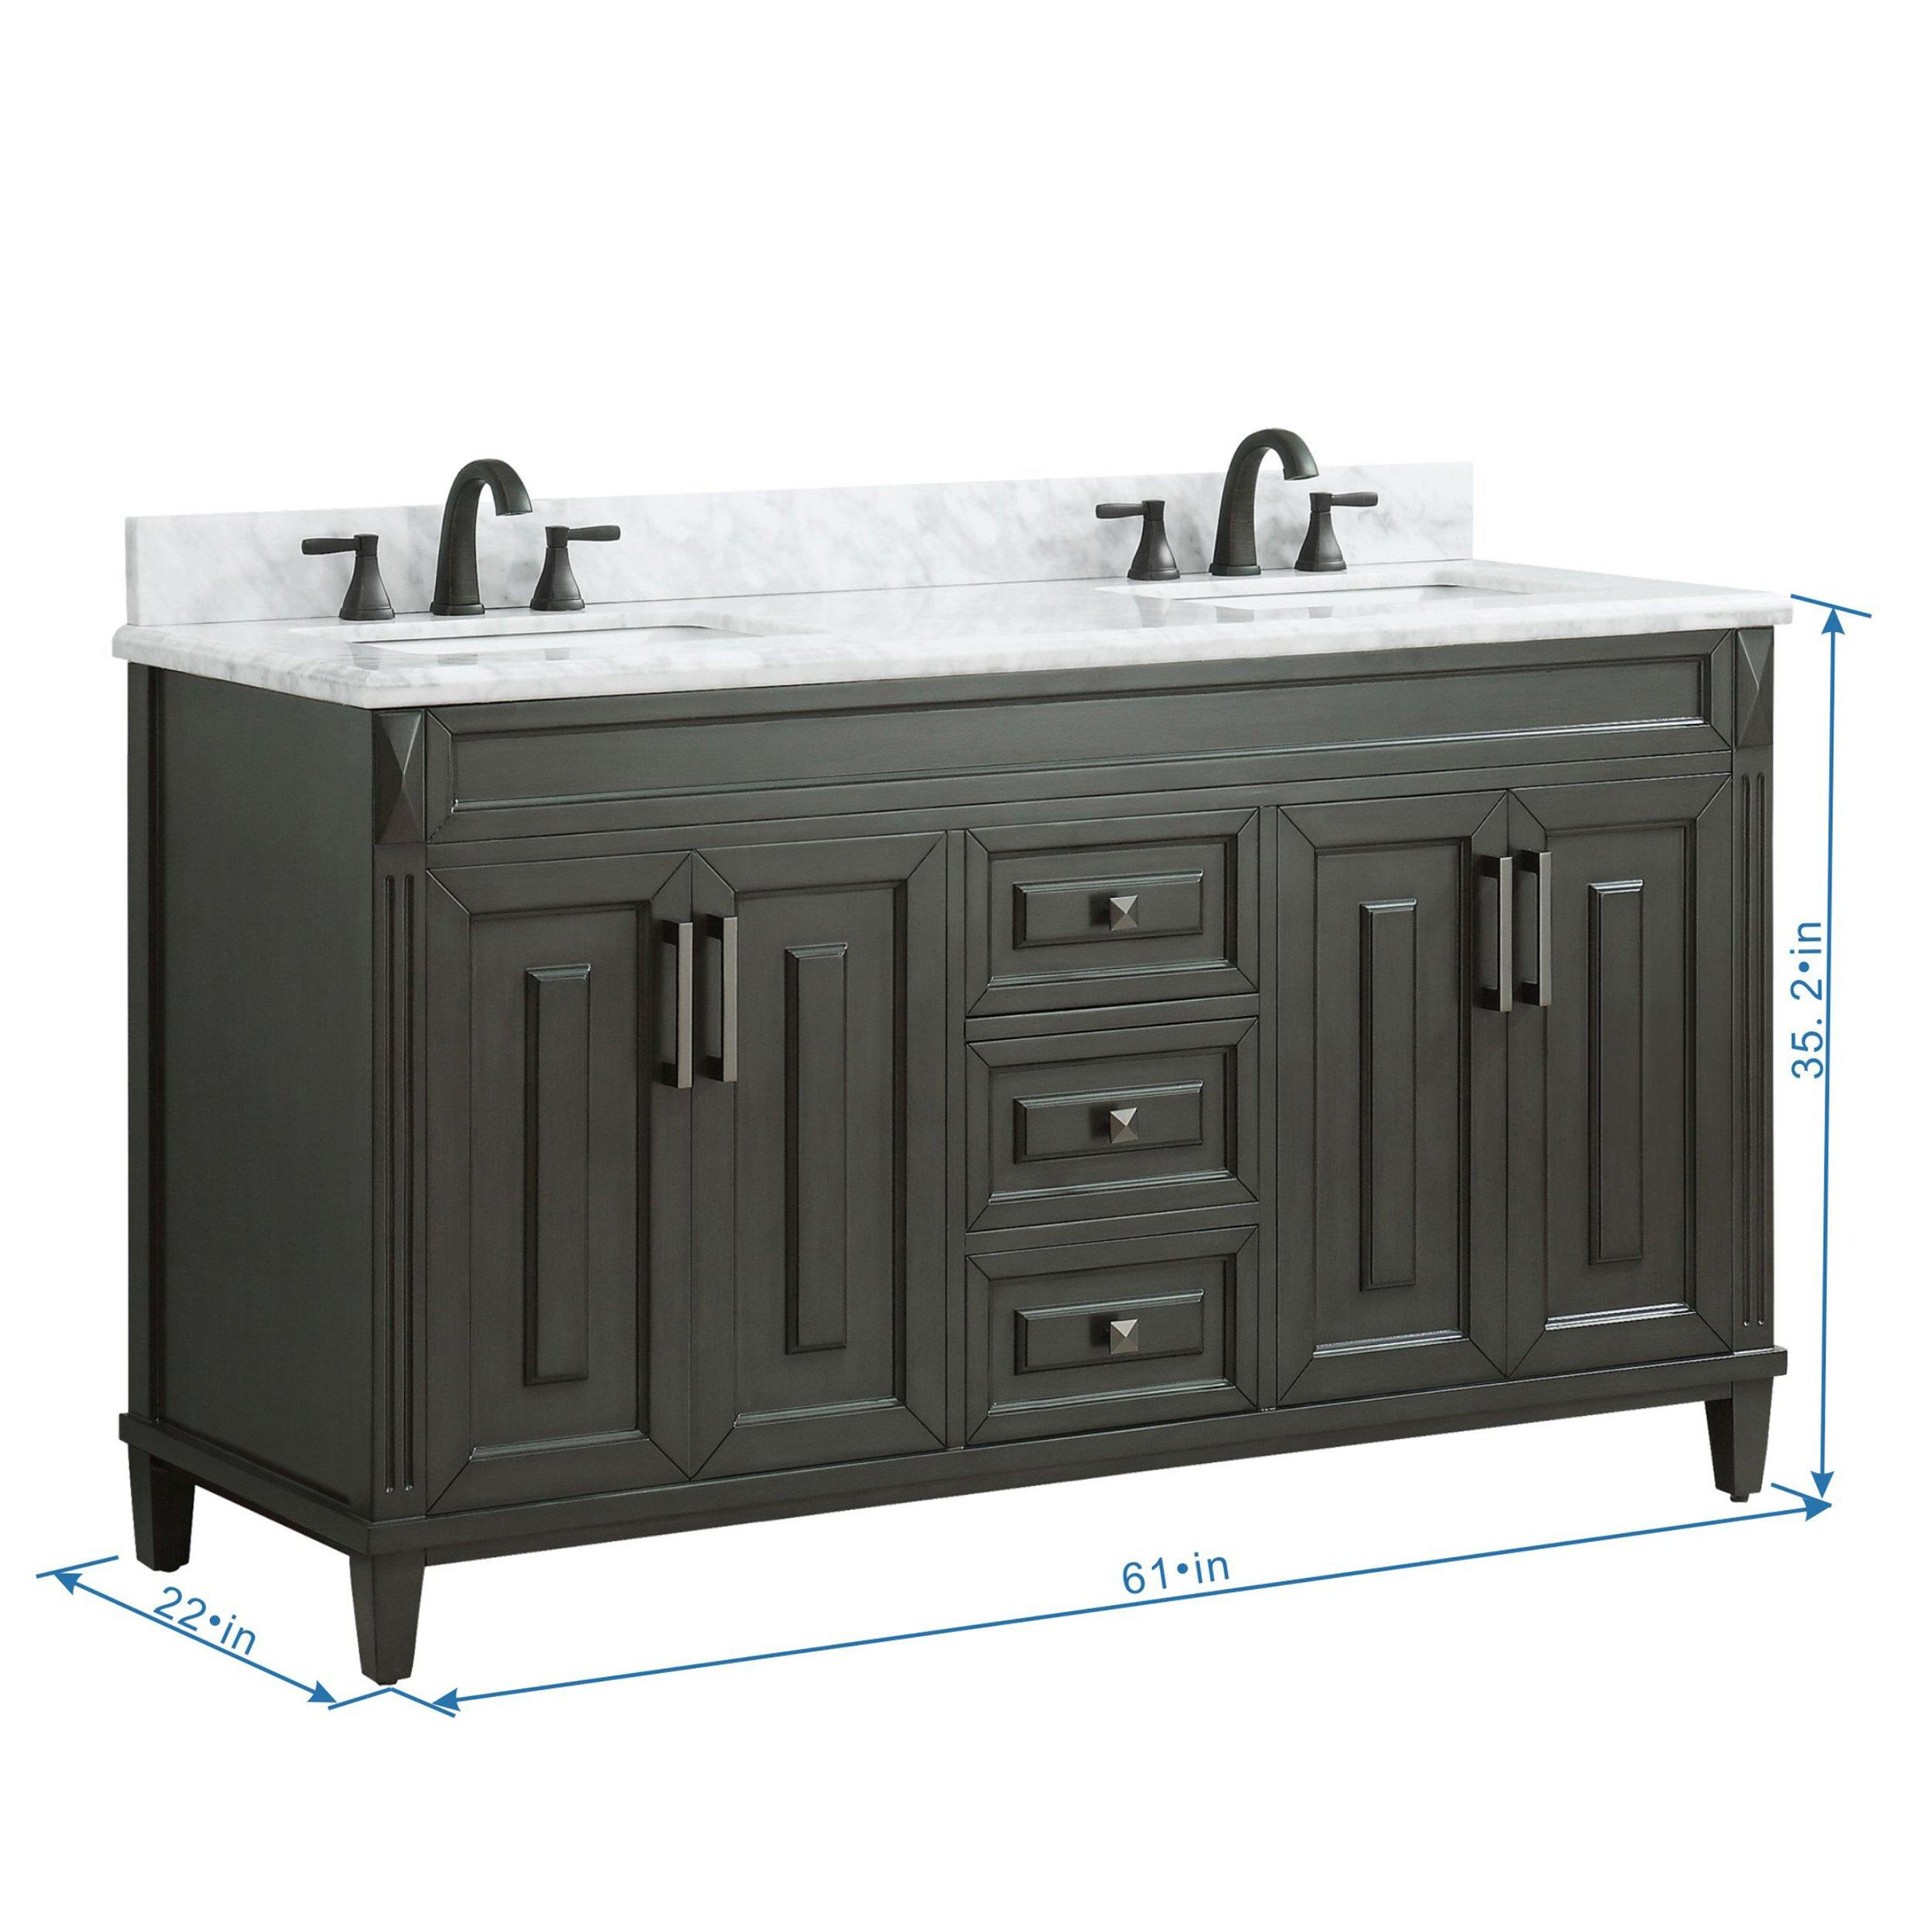 Sterling 61 In Vanity With Carrara Marble Top 61in 100610401 Floor And Decor